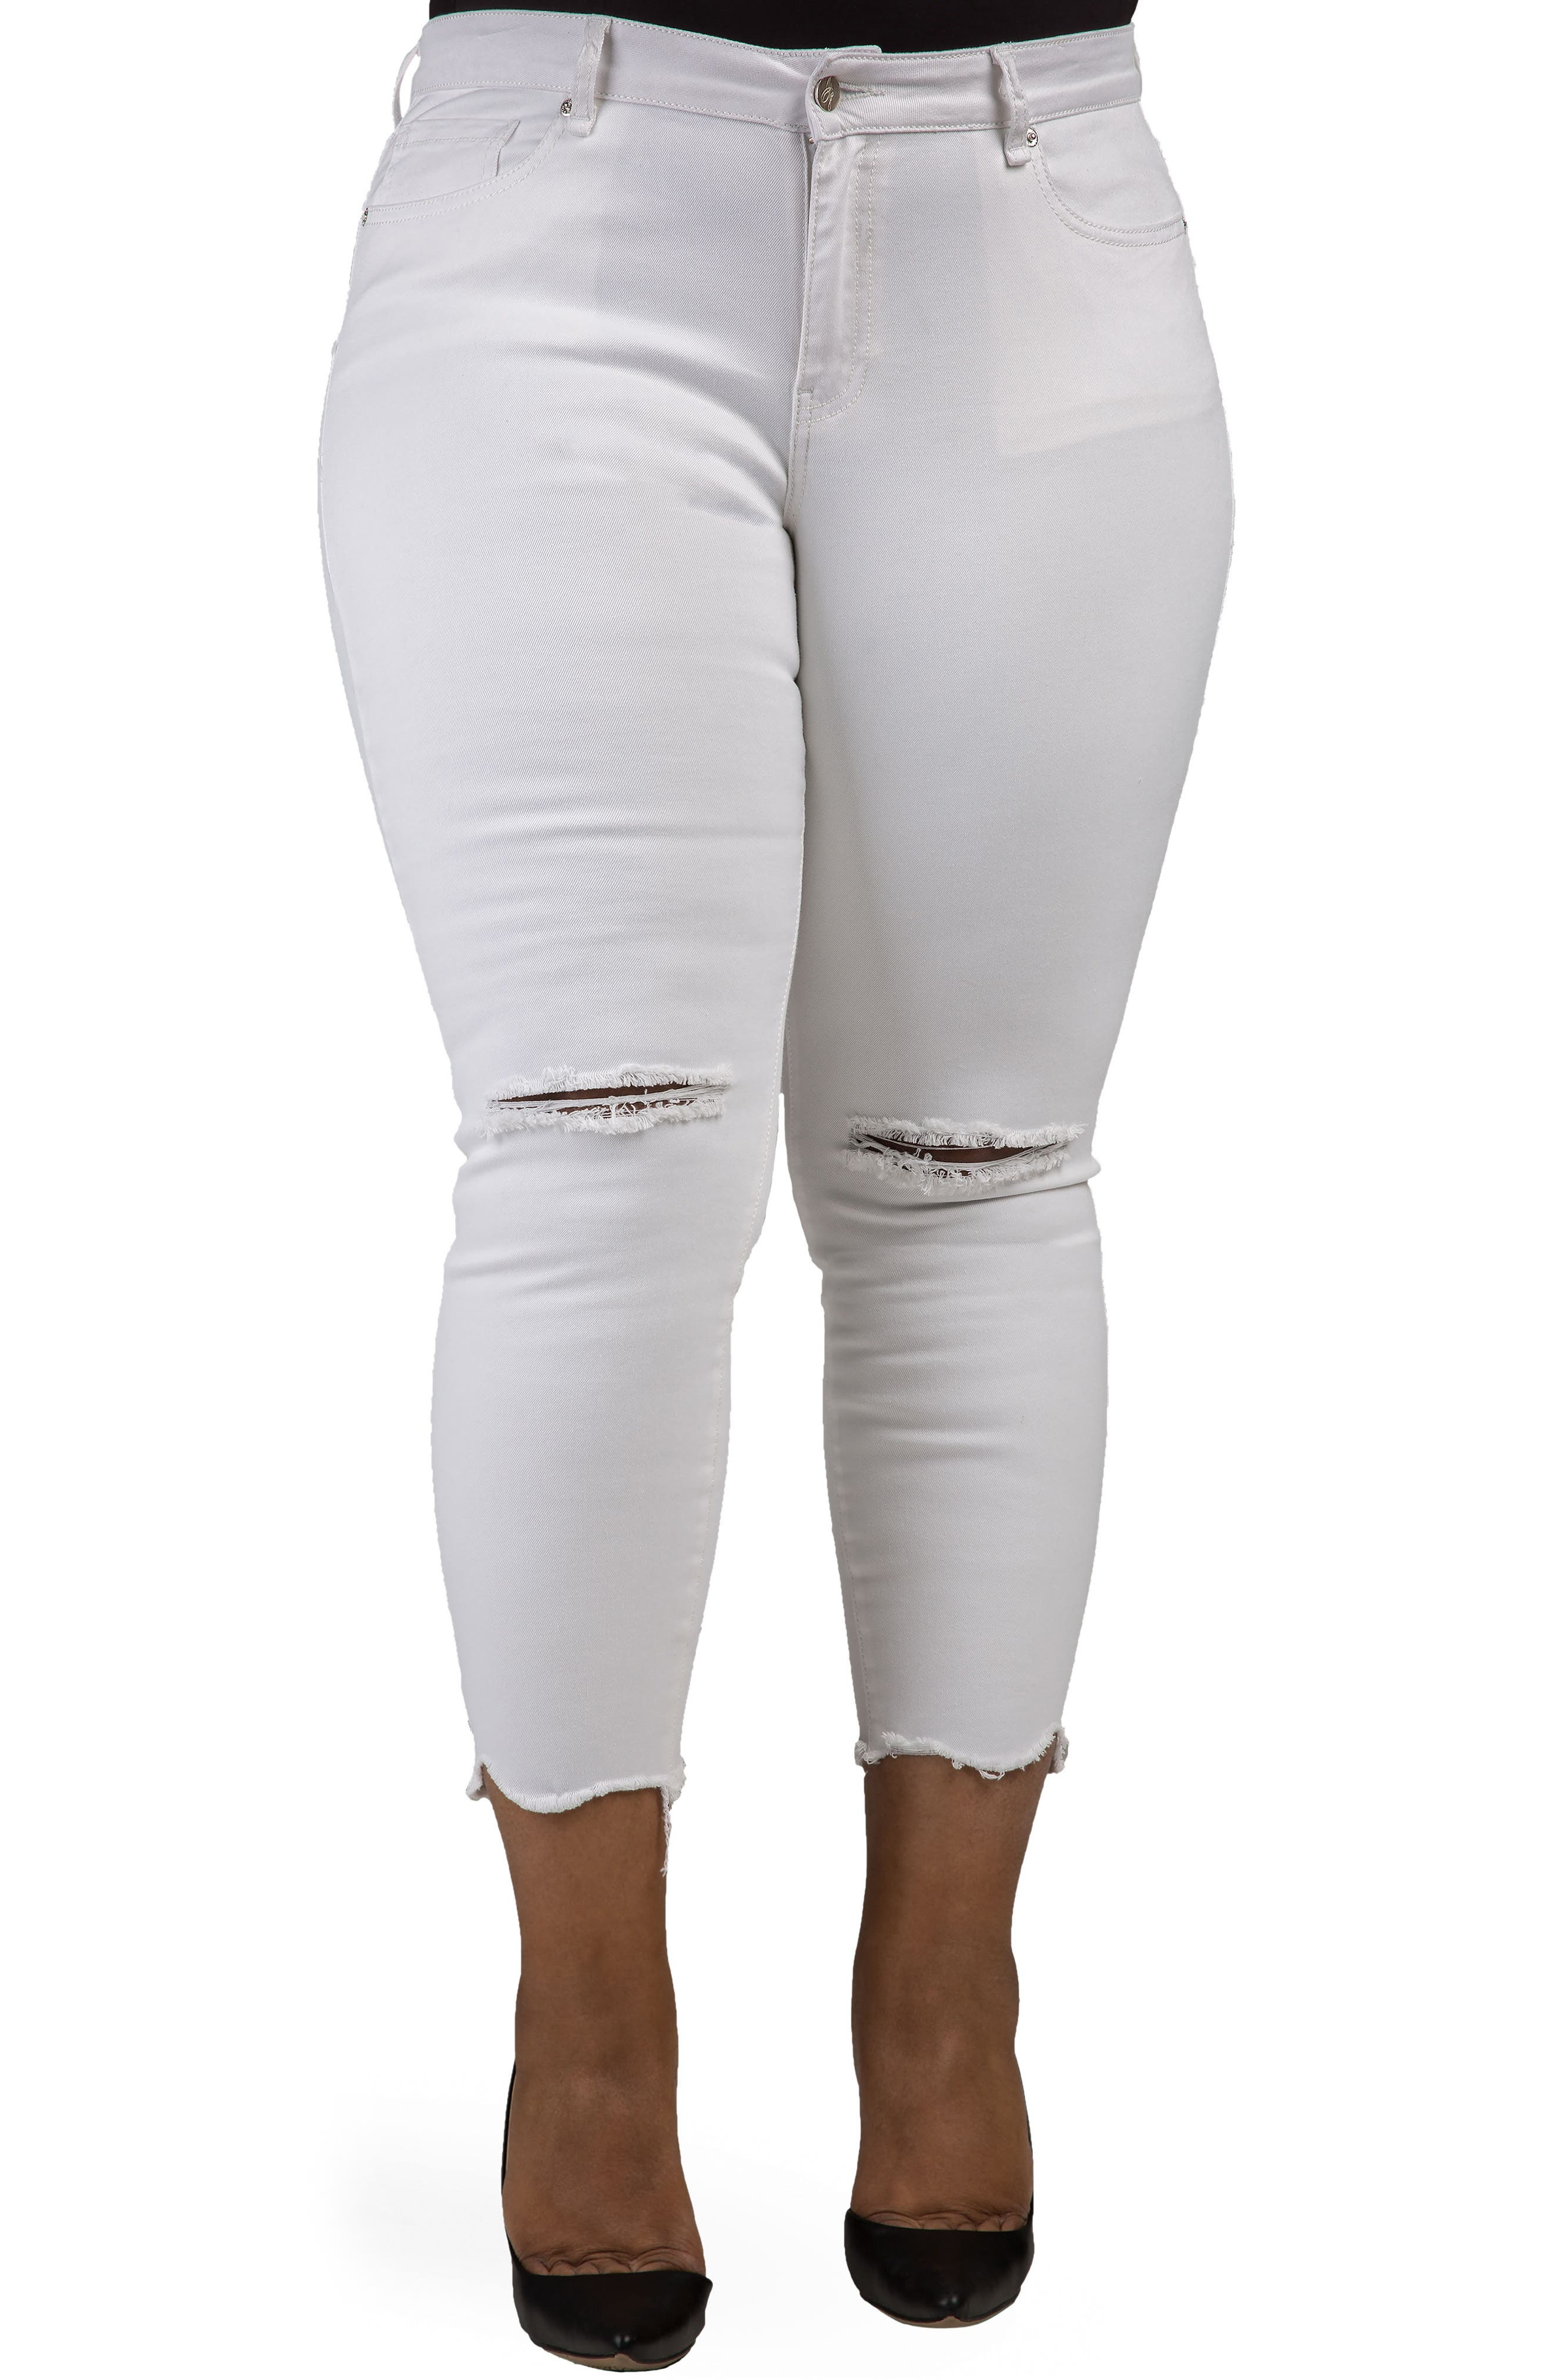 Plus Women's Poetic Justice Ripped Jagged Hem Ankle Jeans